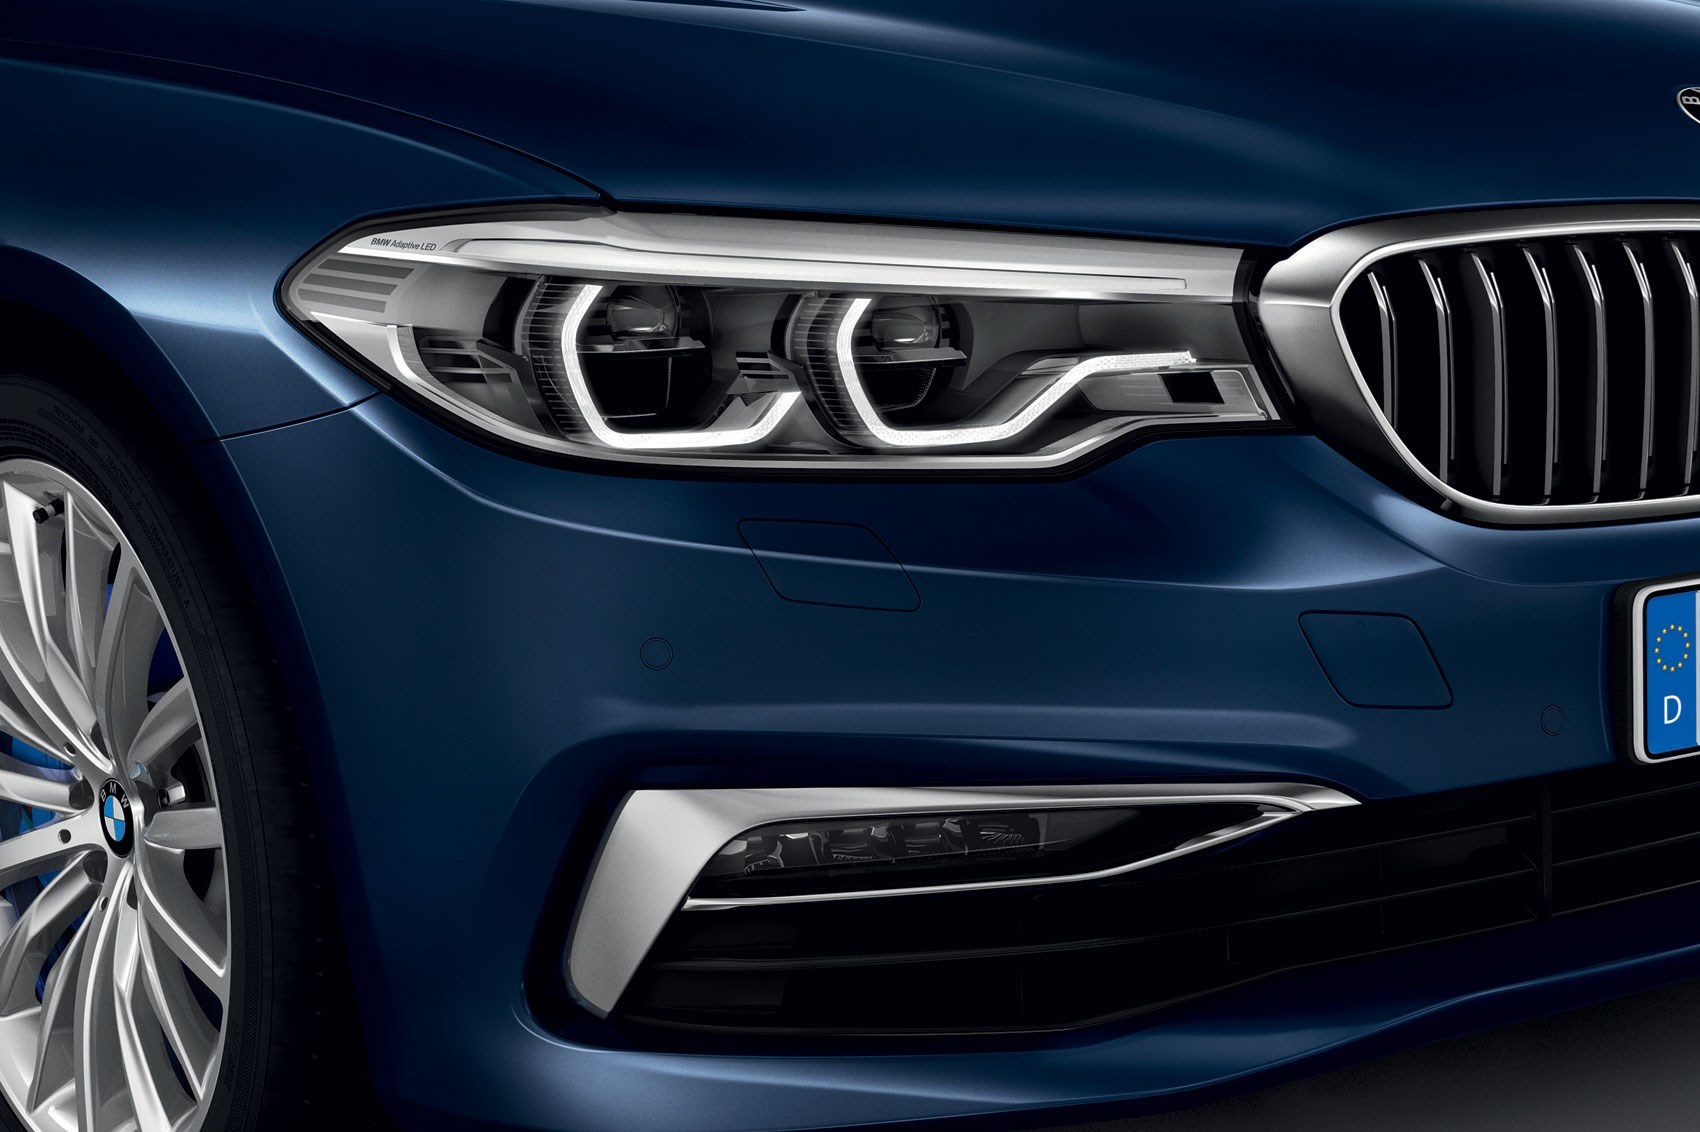 BMW 5 Series: Selection lists in the instrument cluster